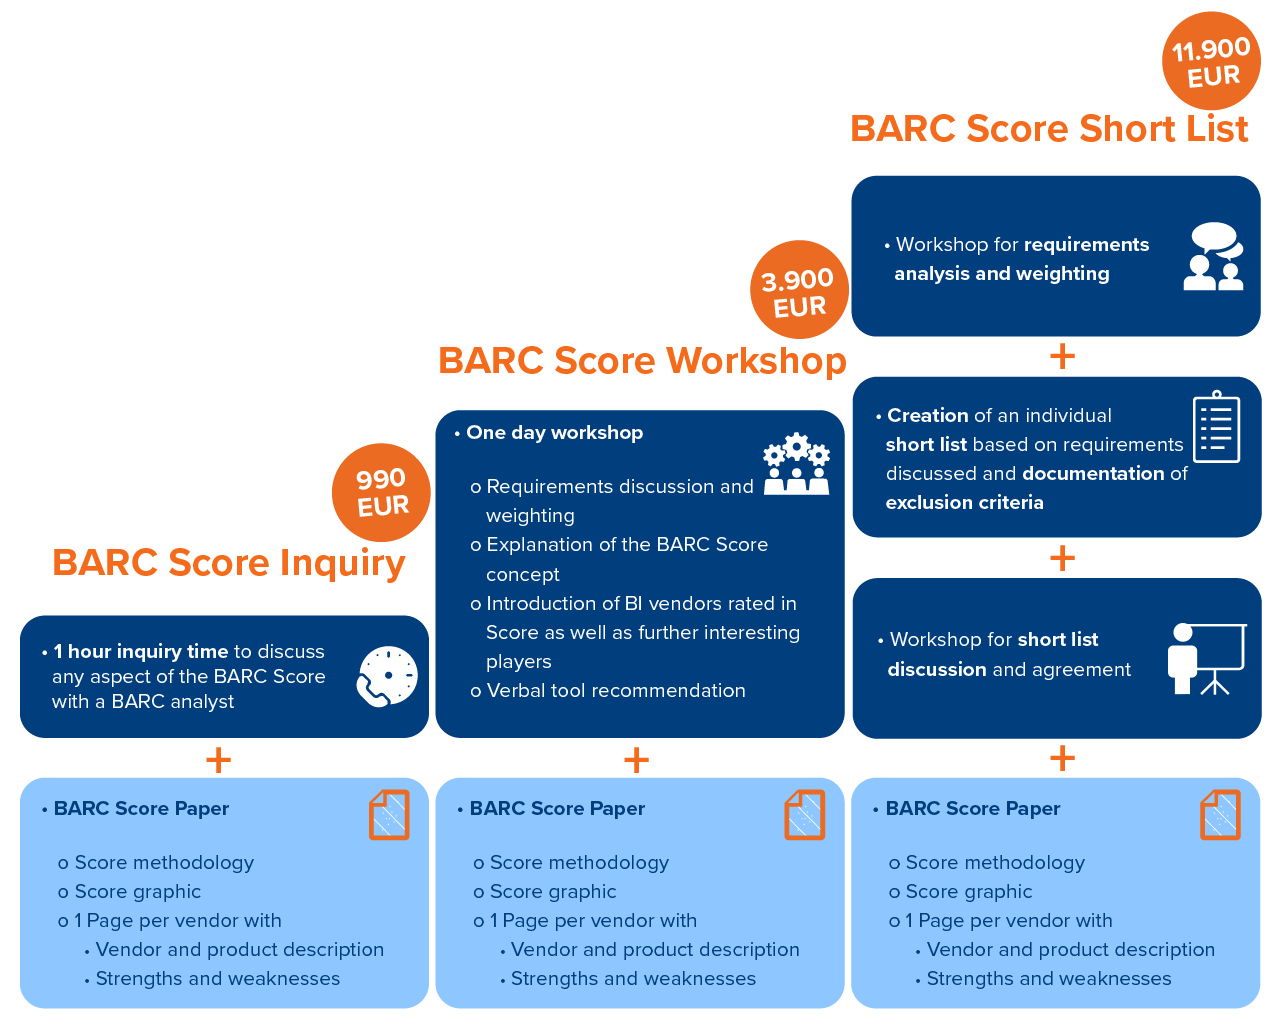 BARC Score purchase options